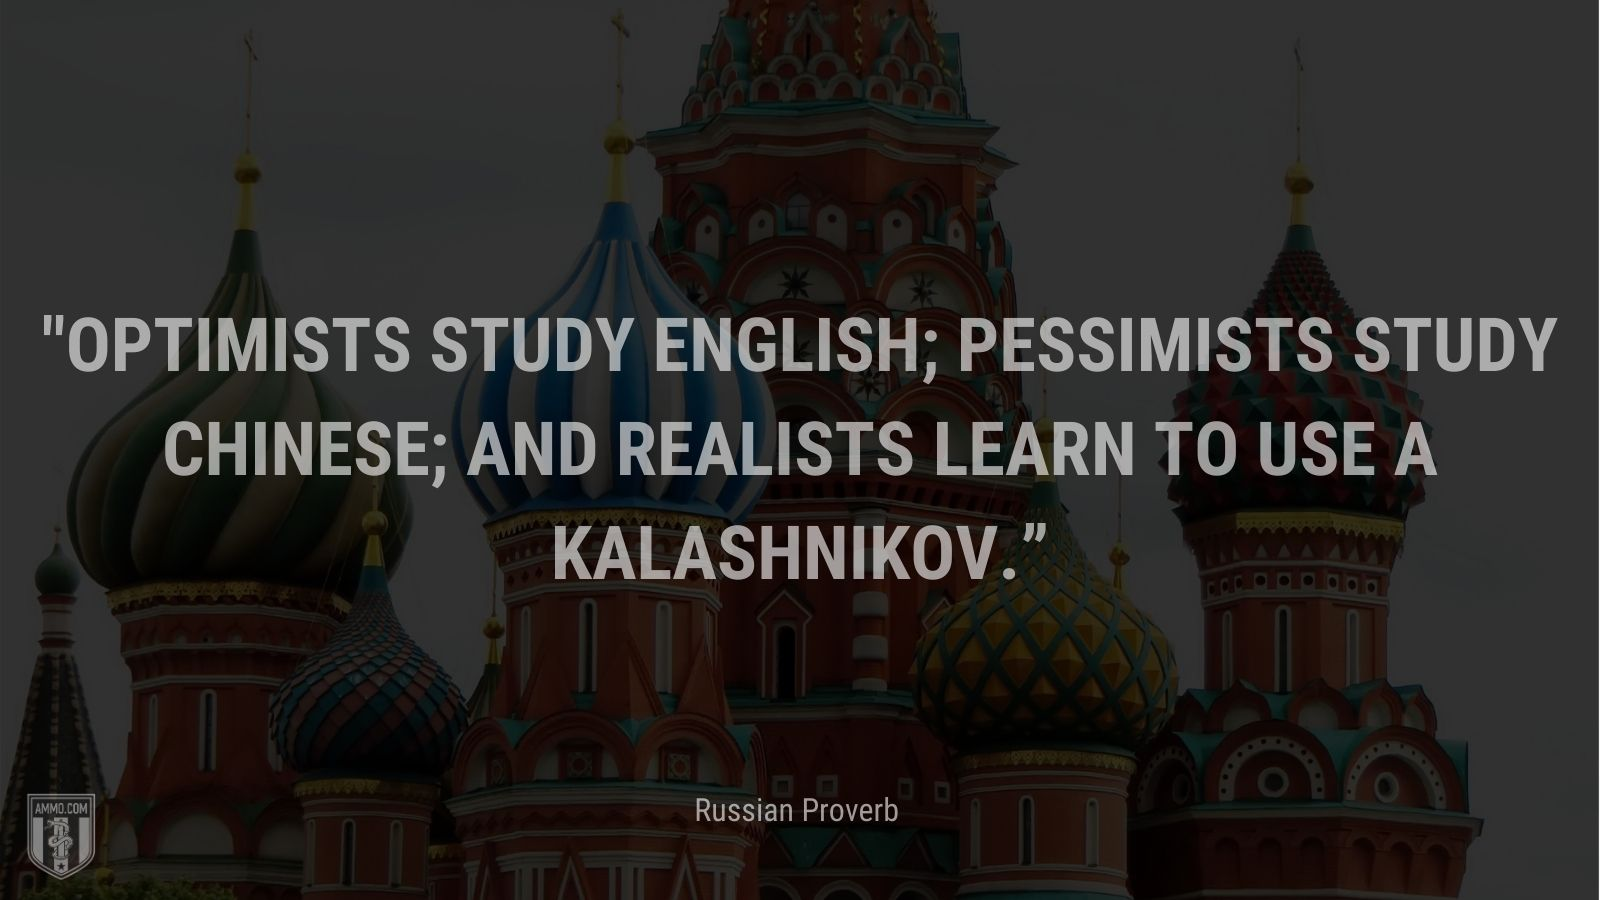 """""""Optimists study English; pessimists study Chinese; and realists learn to use a Kalashnikov."""" - Russian Proverb"""